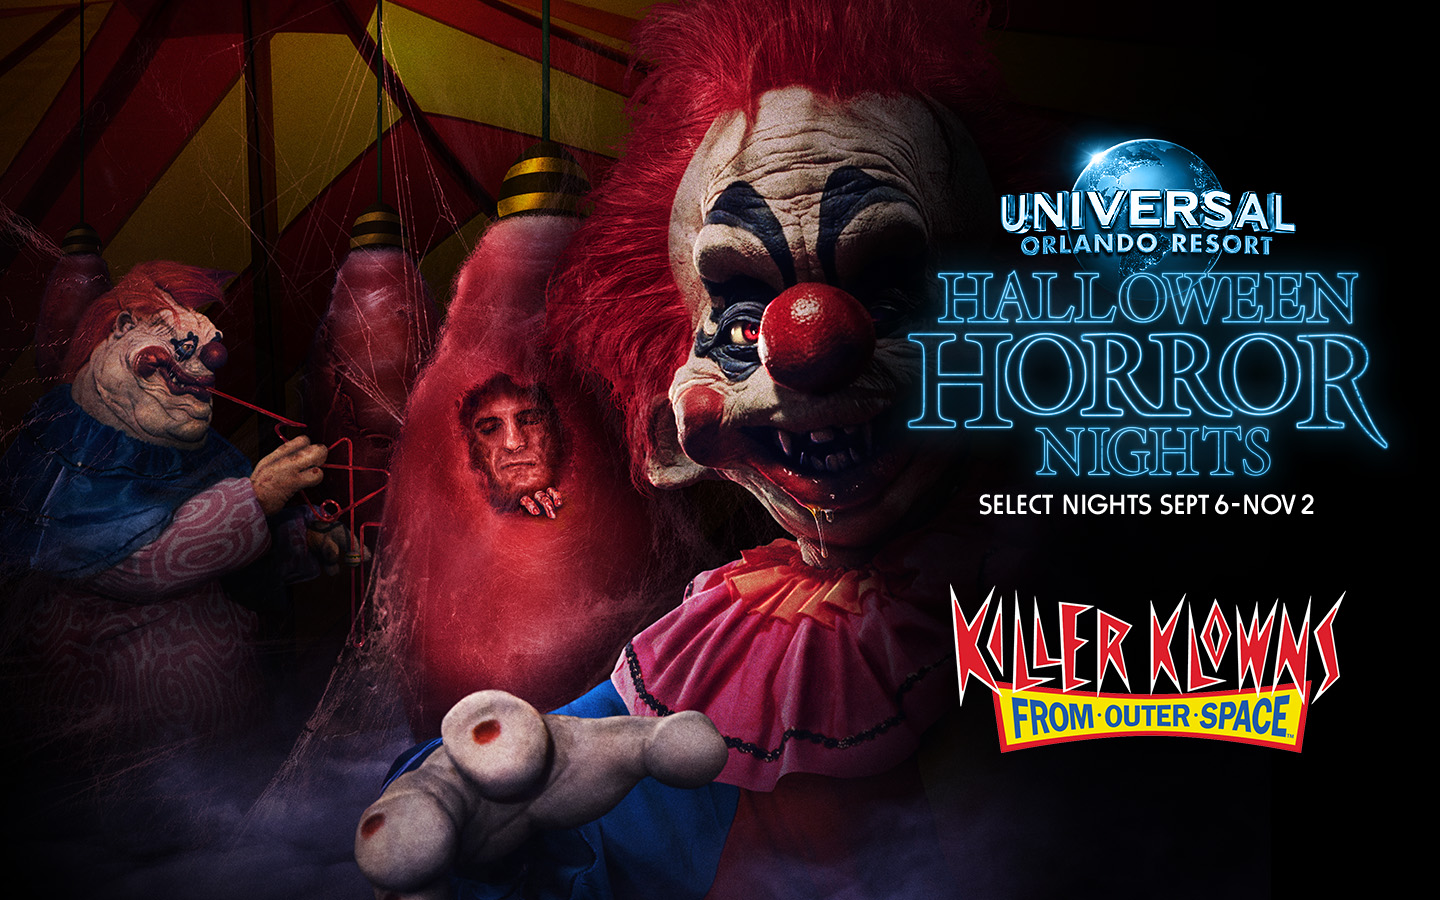 Killer Klowns from Outer Space house announced for Halloween Horror Nights 2019